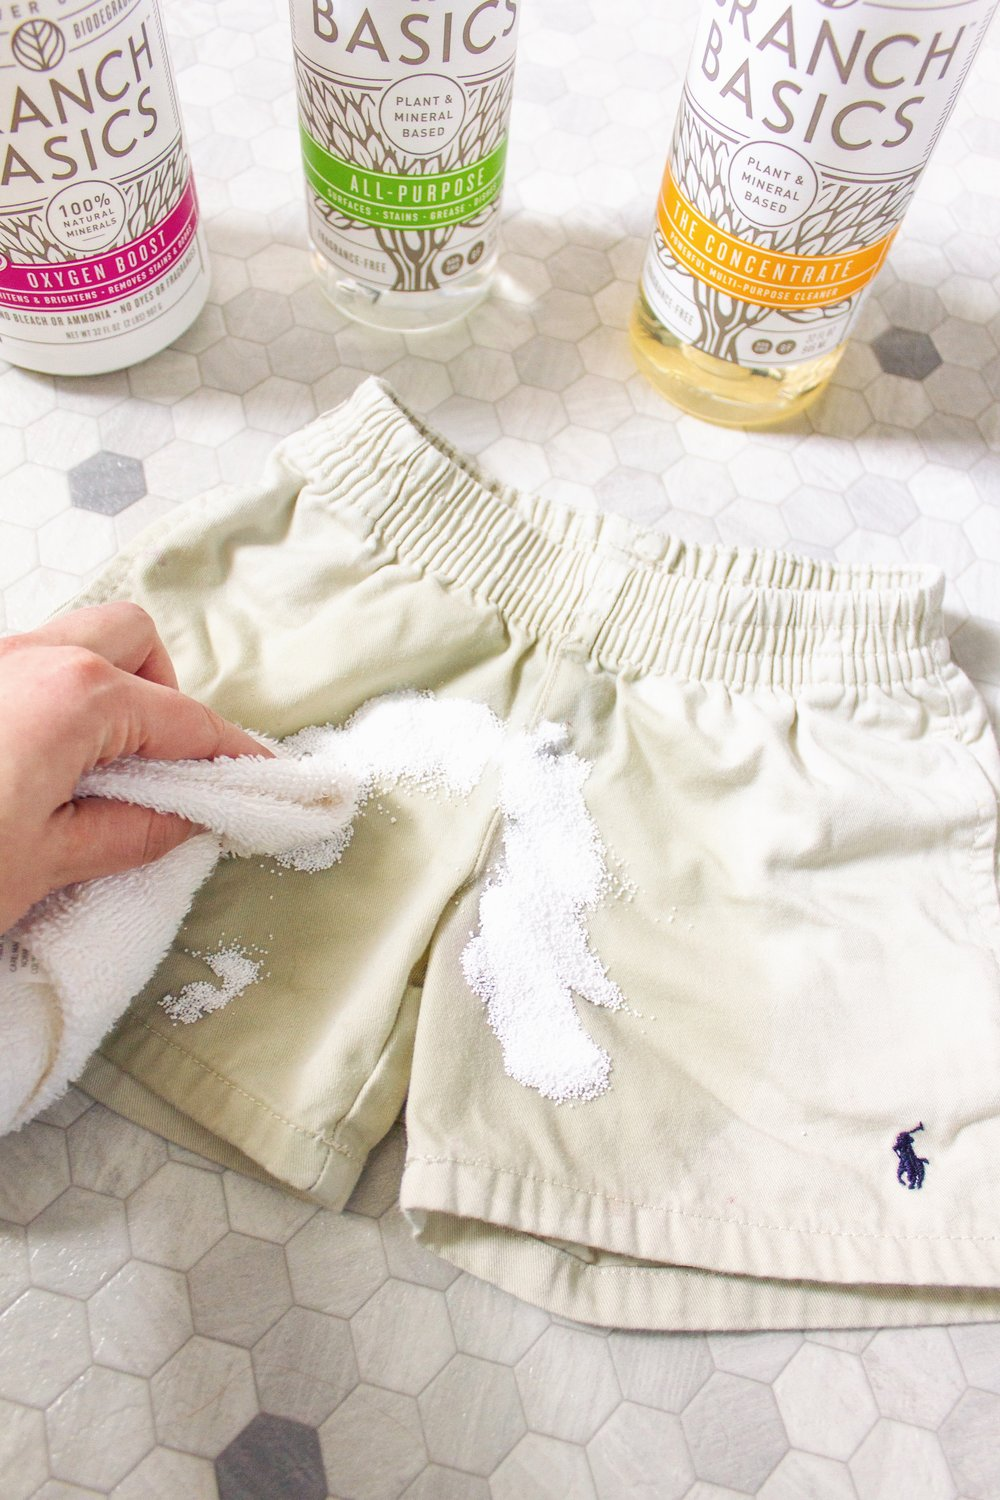 STEP THREE: Agitate by lightly rubbing with a washcloth - Agitate the stain by lightly rubbing it with a washcloth, activating the enzymatic reaction that takes place to lift + remove the stain.